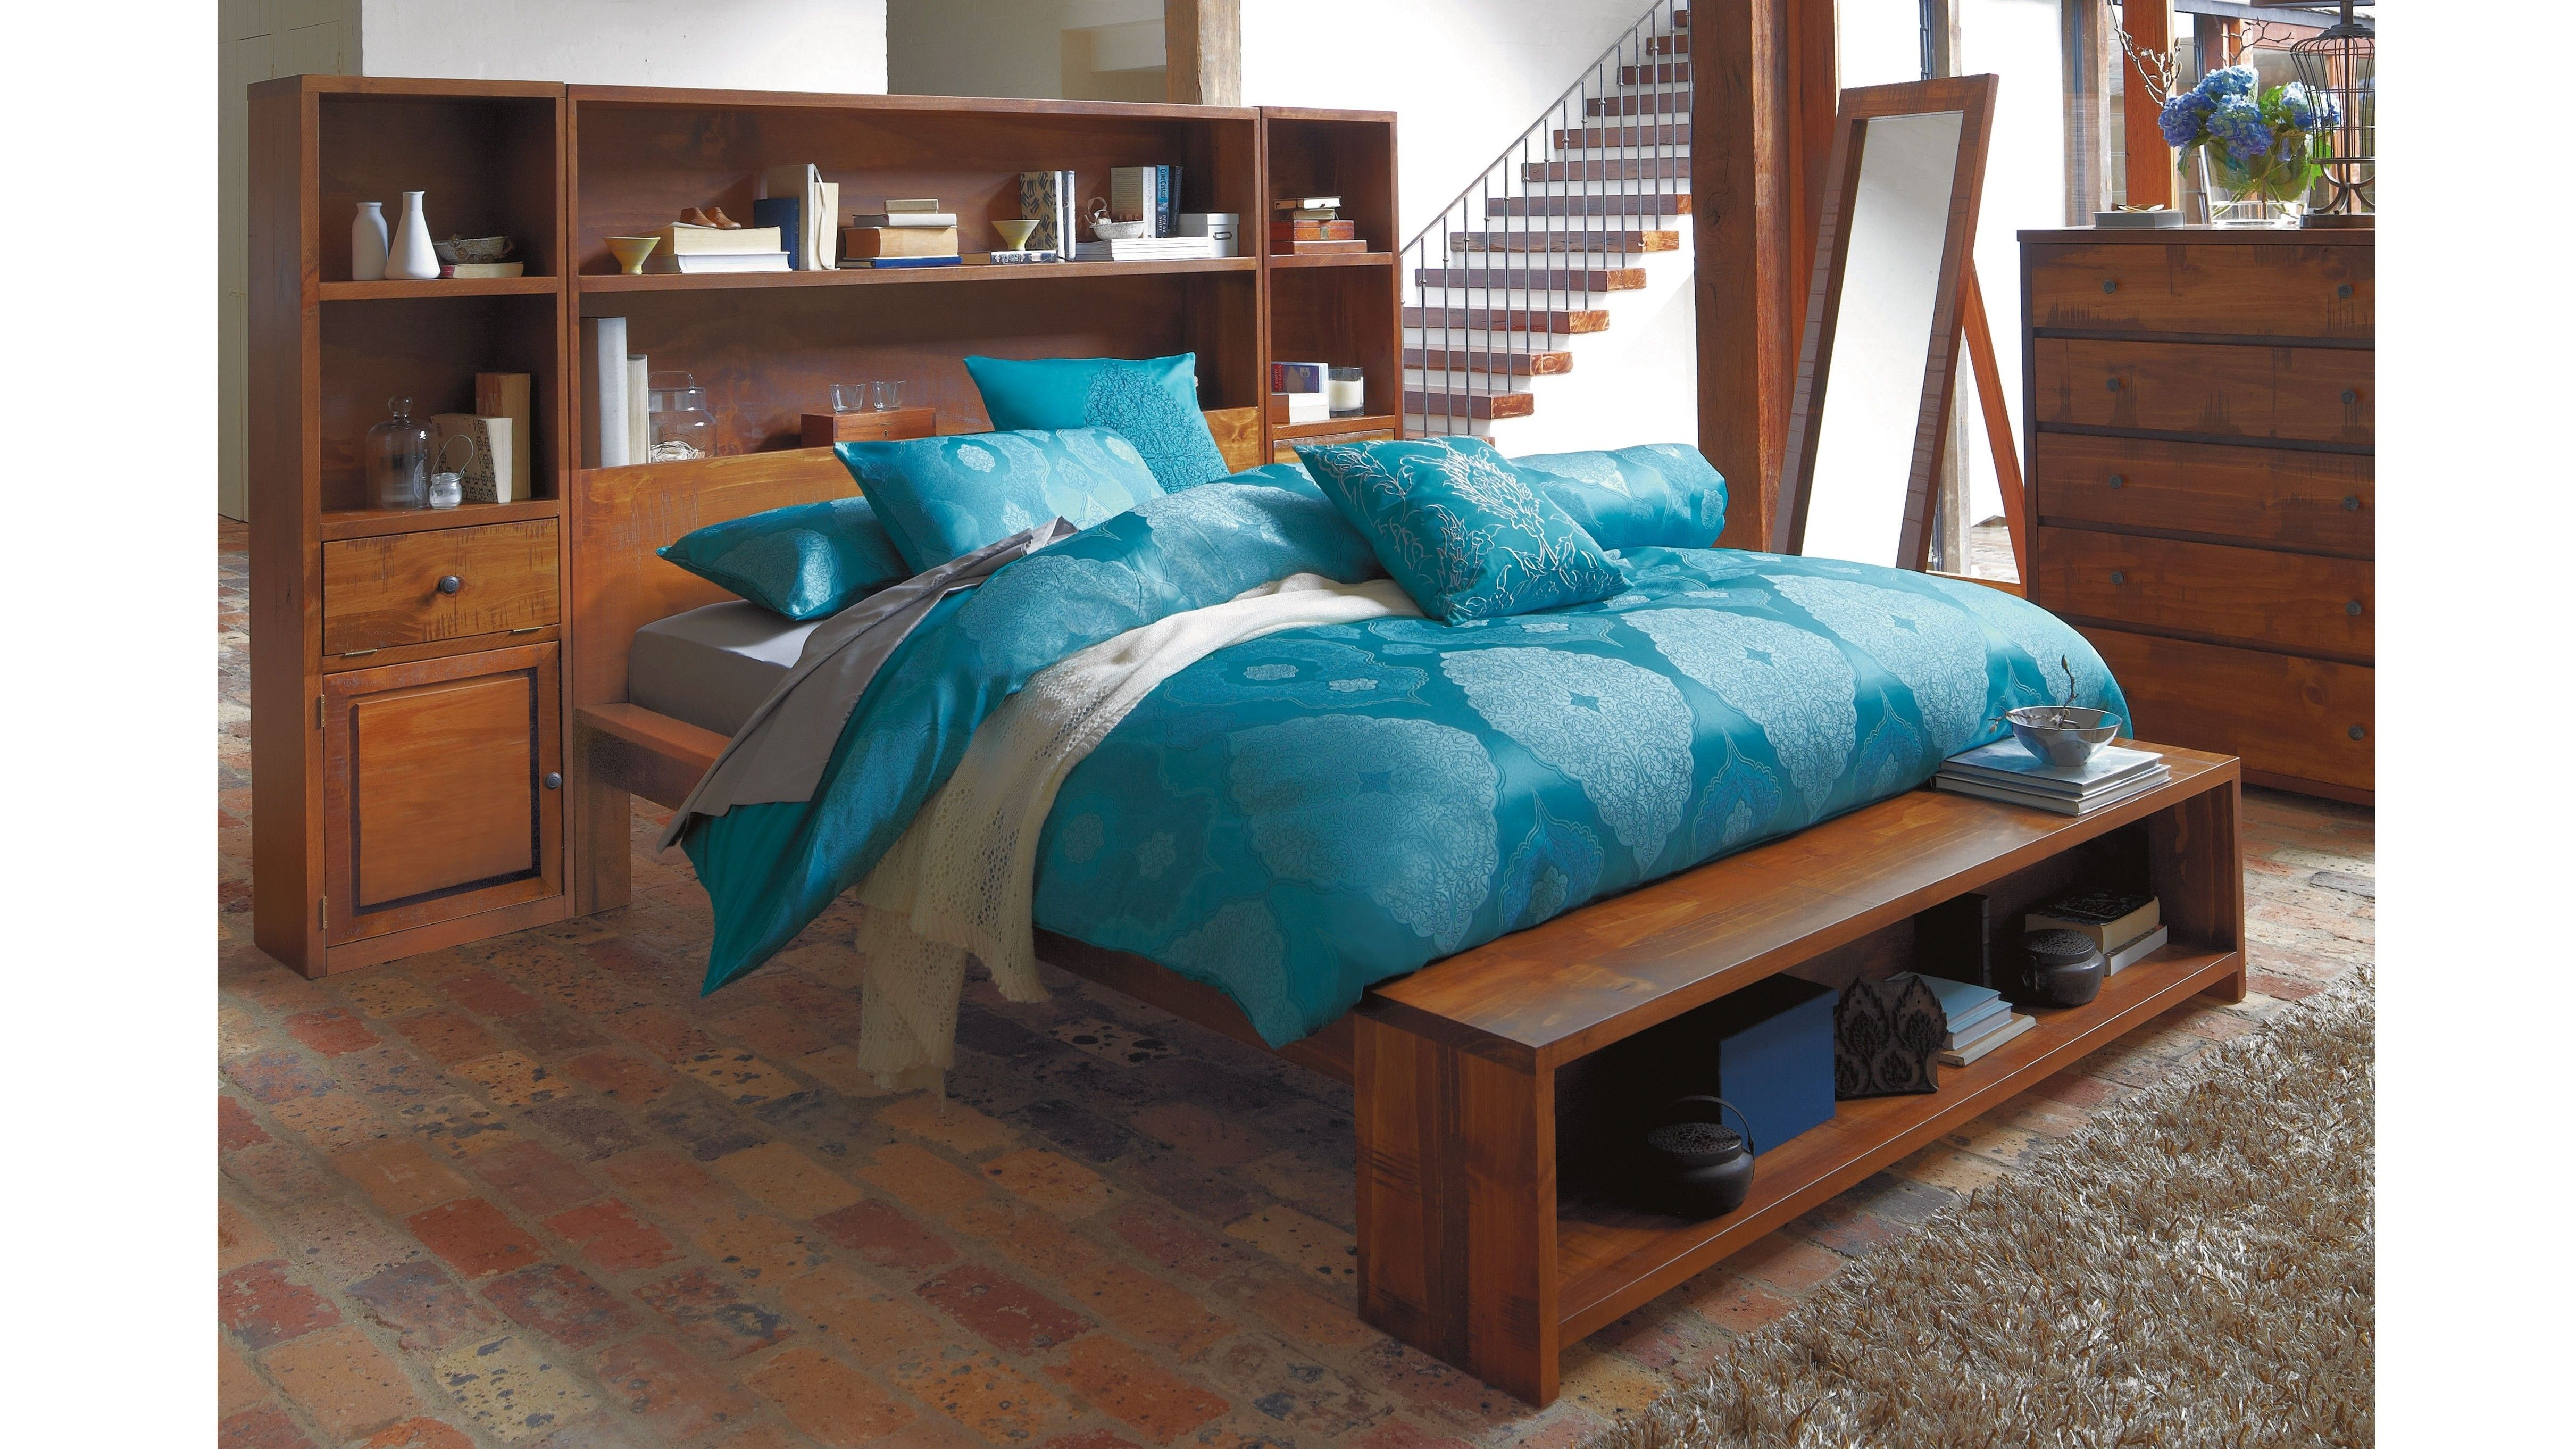 Library Queen Bed Home Ideas Bed Furniture Bed Bedroom Decor